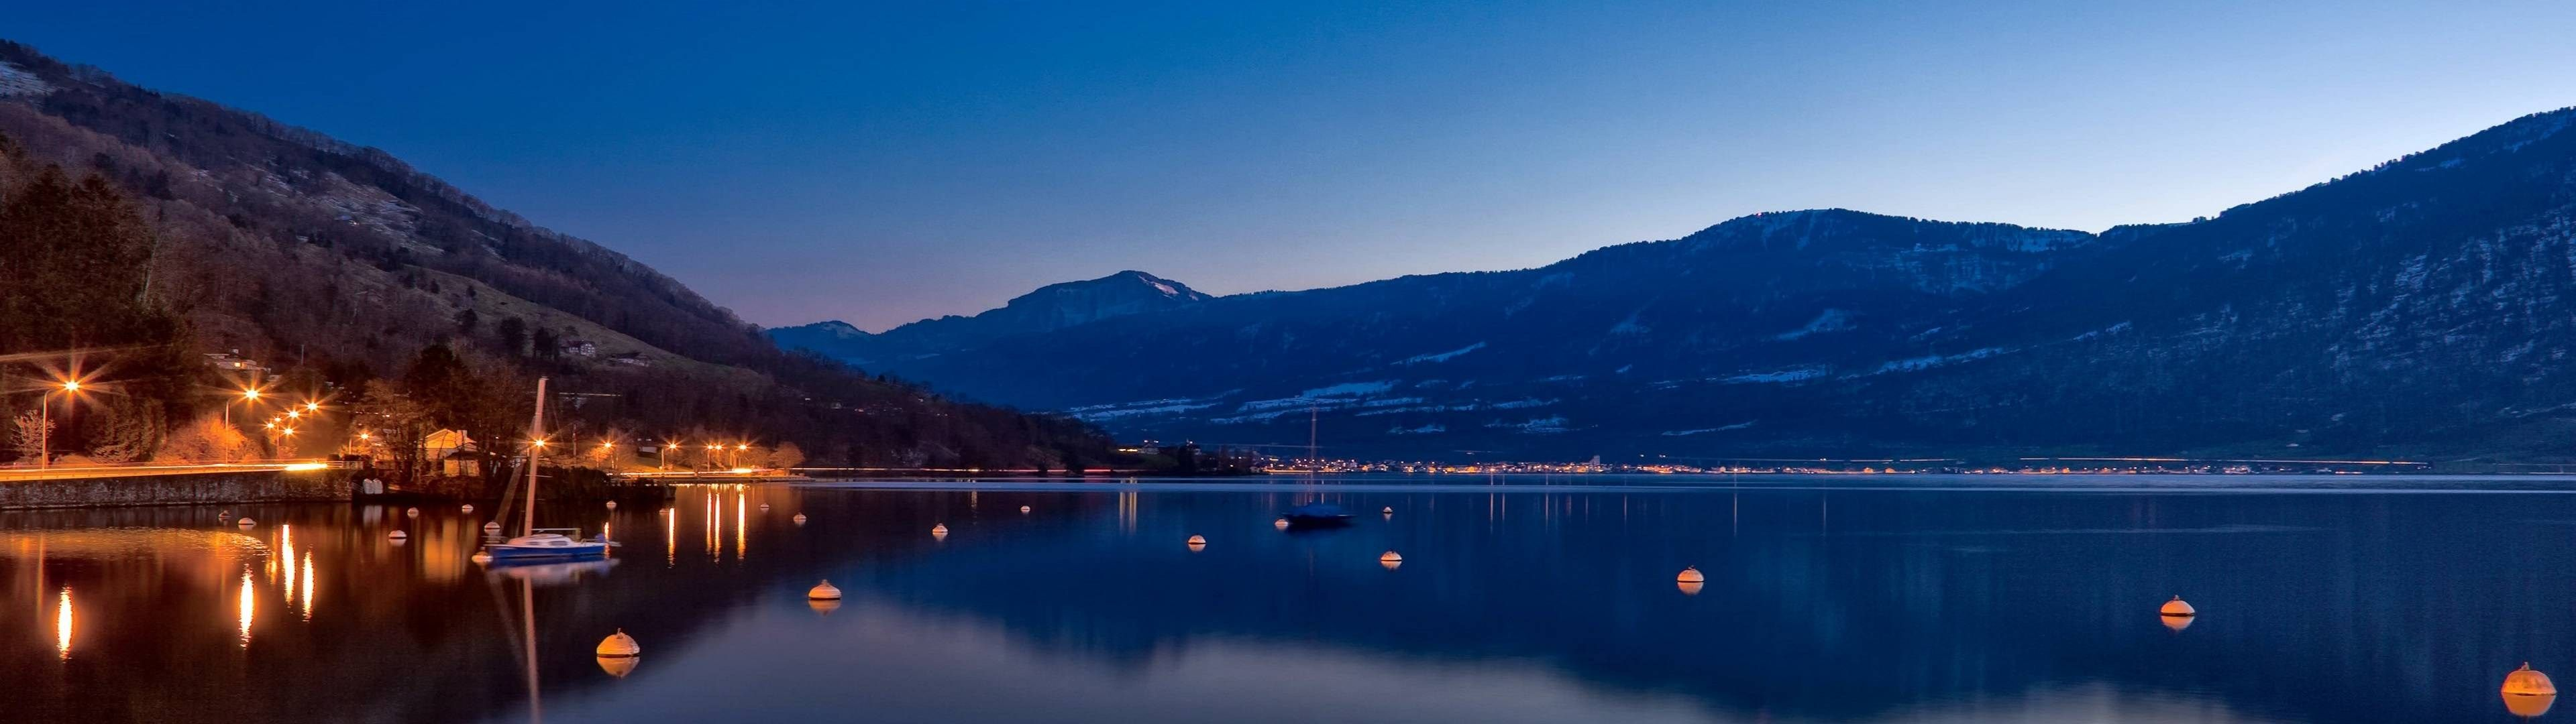 4k lake hd wallpaper (3840x1080)